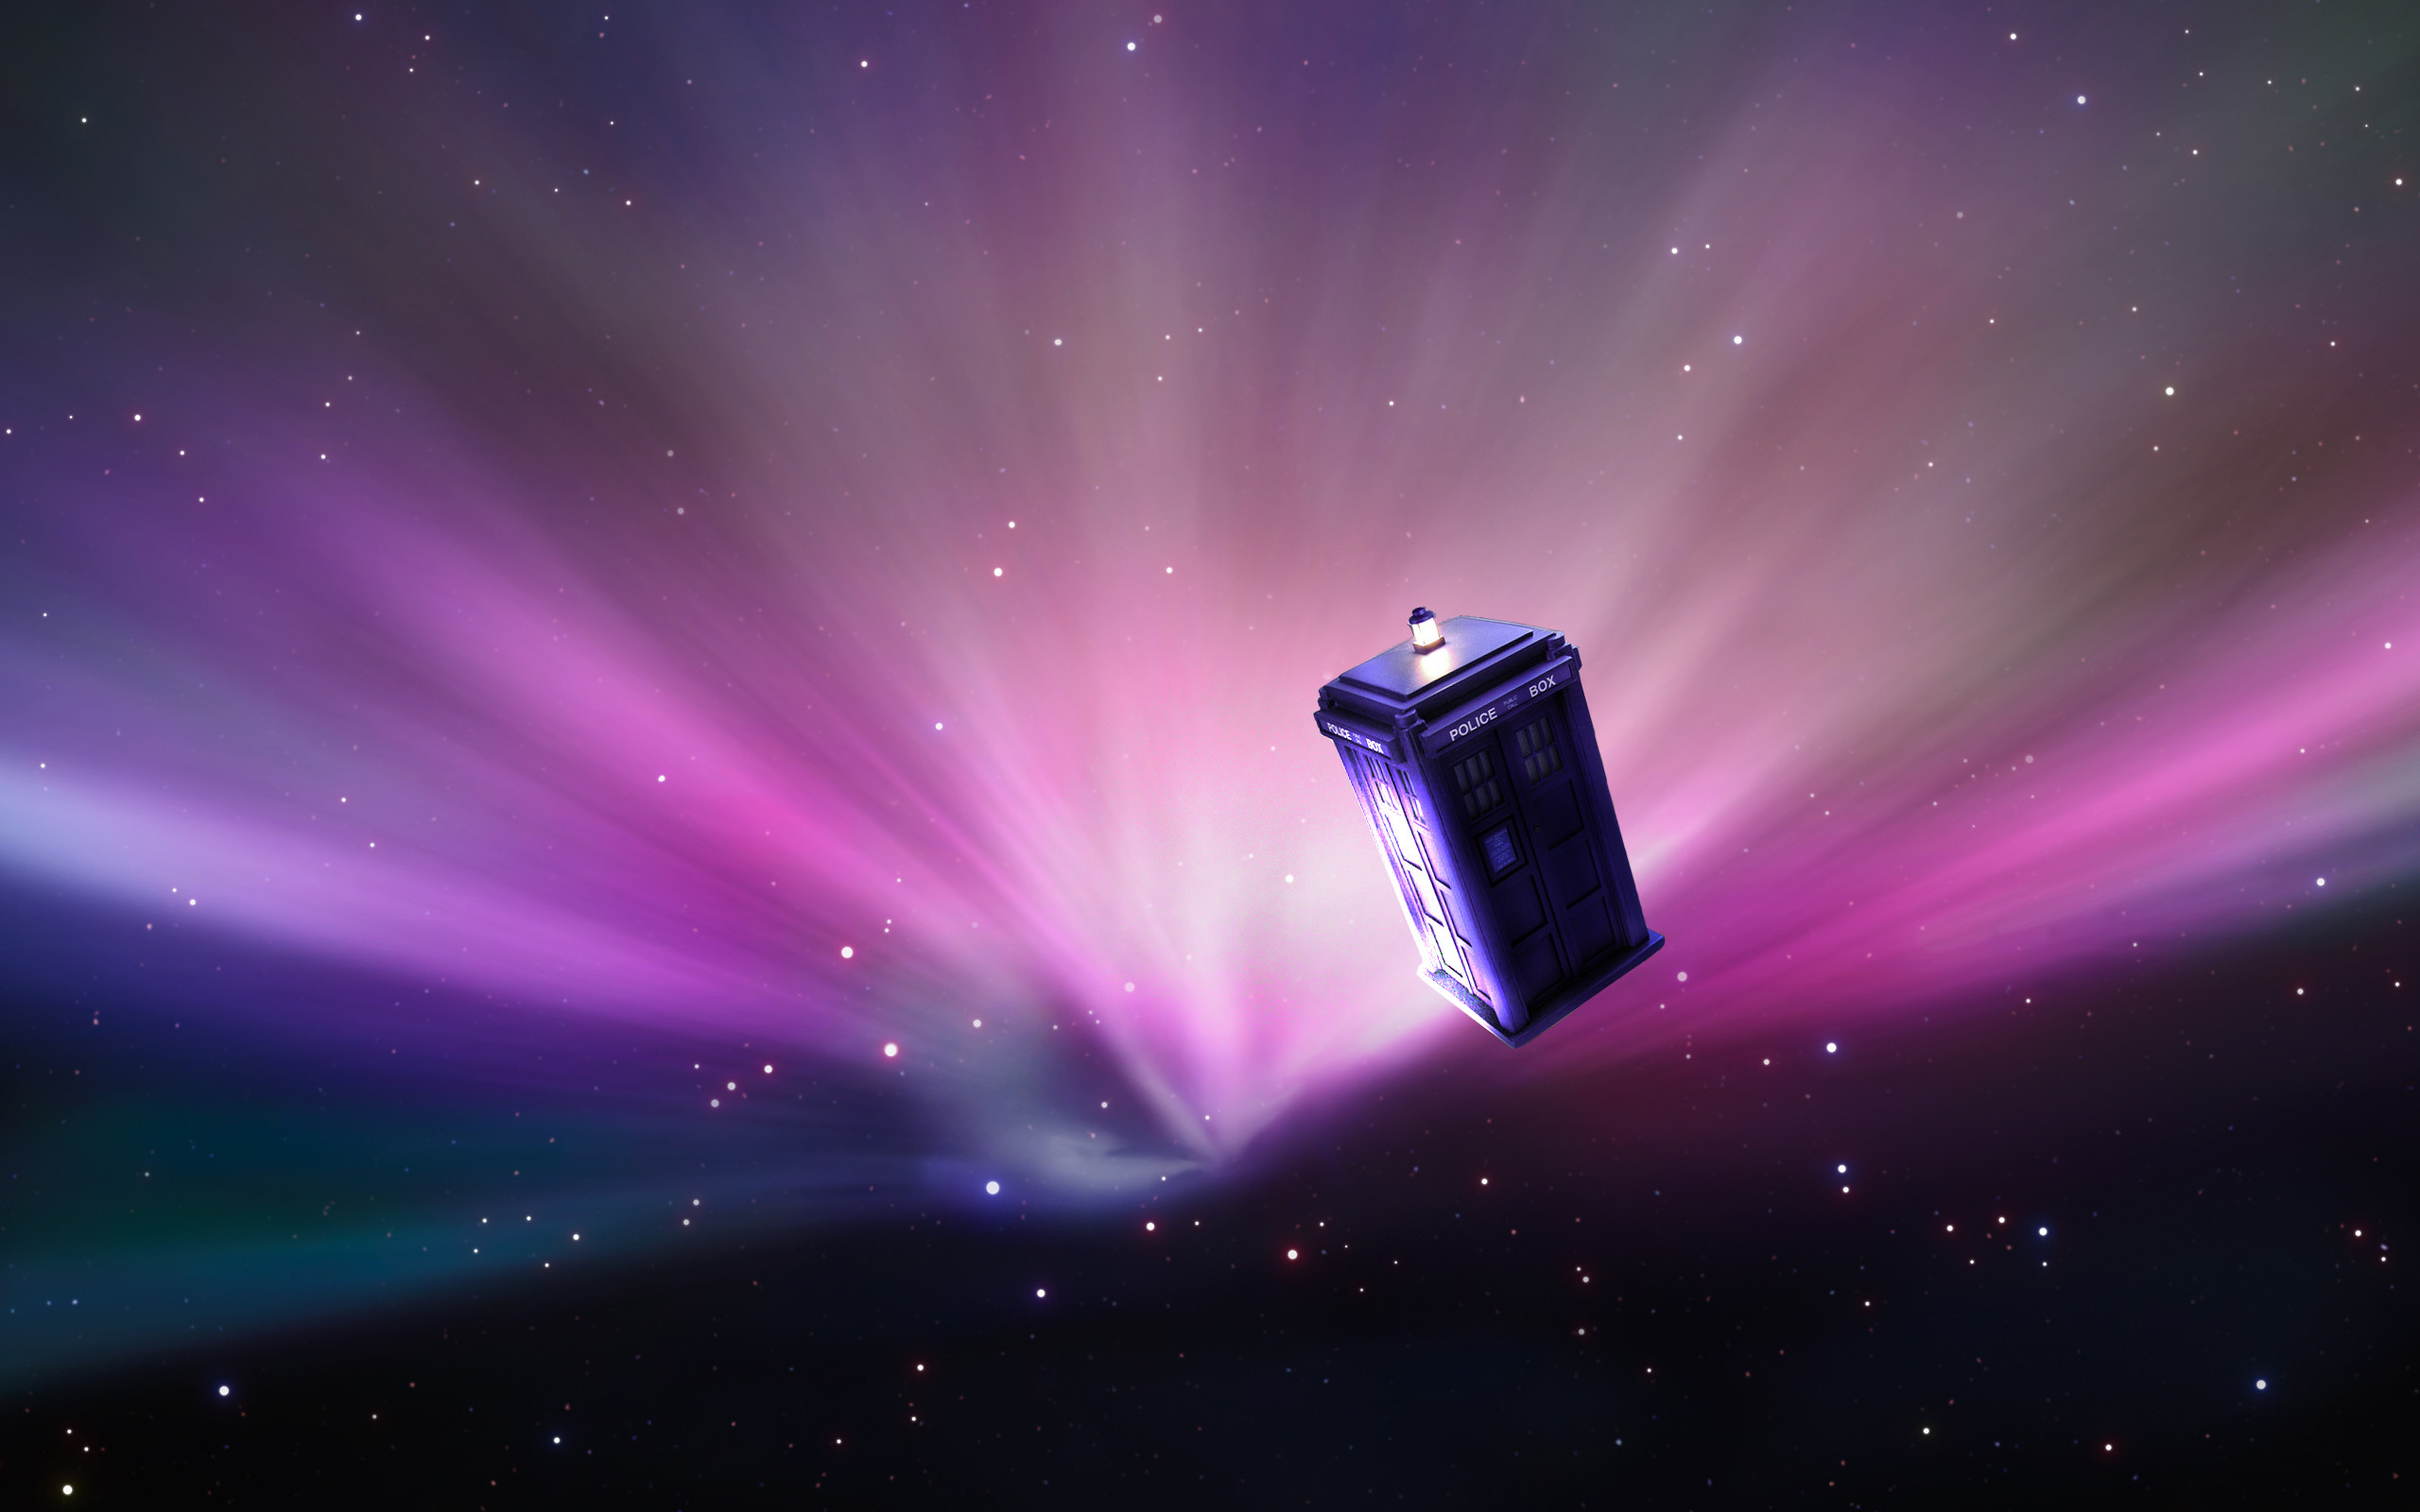 Doctor Who Wallpaper by wait this is the apple computer back ground with  the TARDIS | Doctor Who background | Pinterest | Tardis, Torchwood and  Tardis …